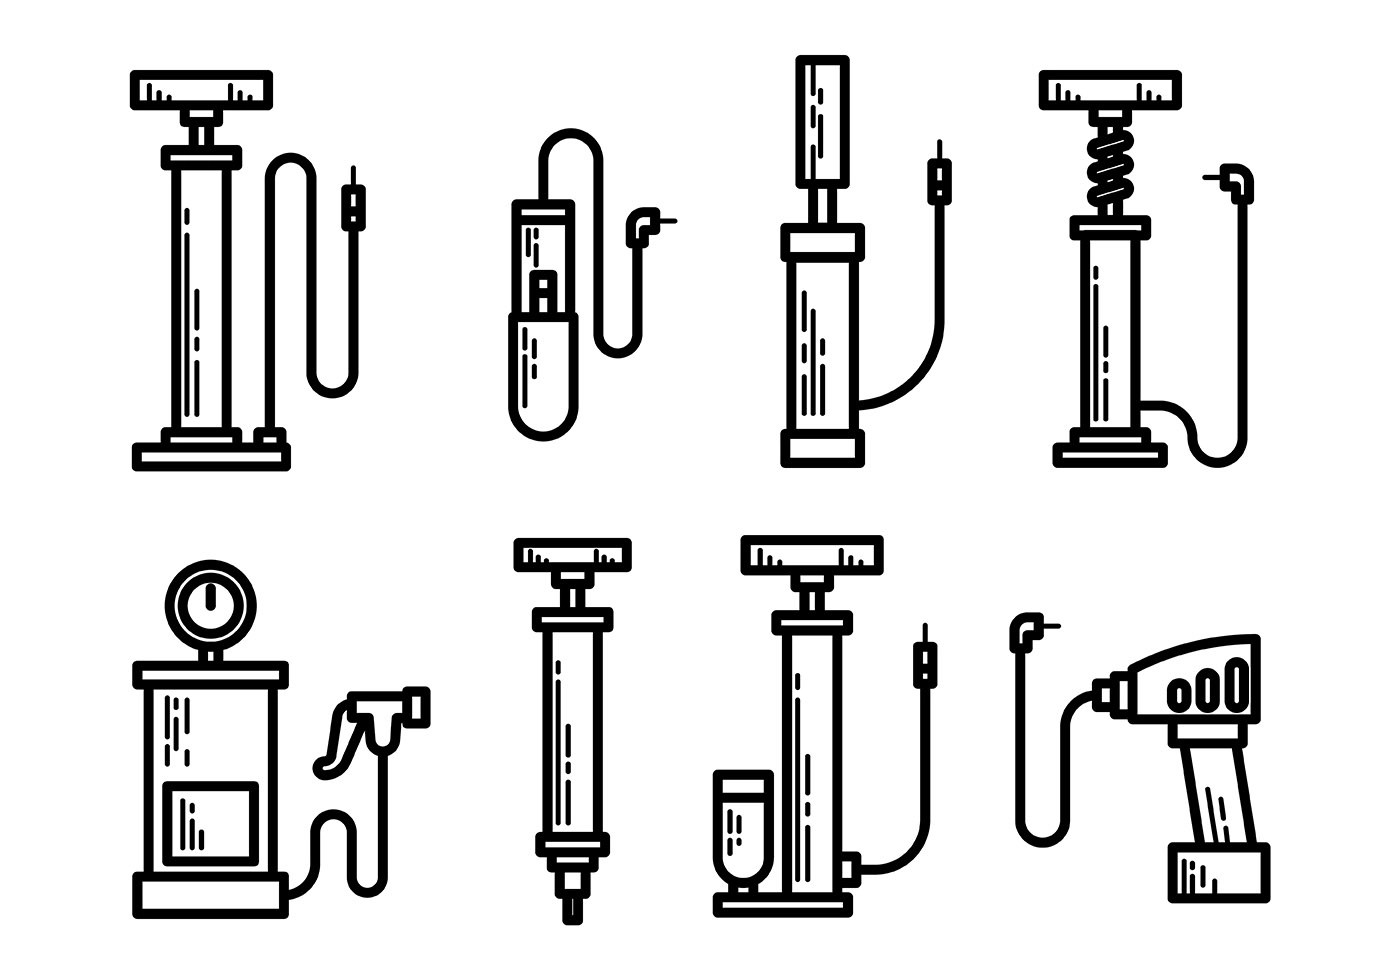 Schematic Symbol For Air Compressor